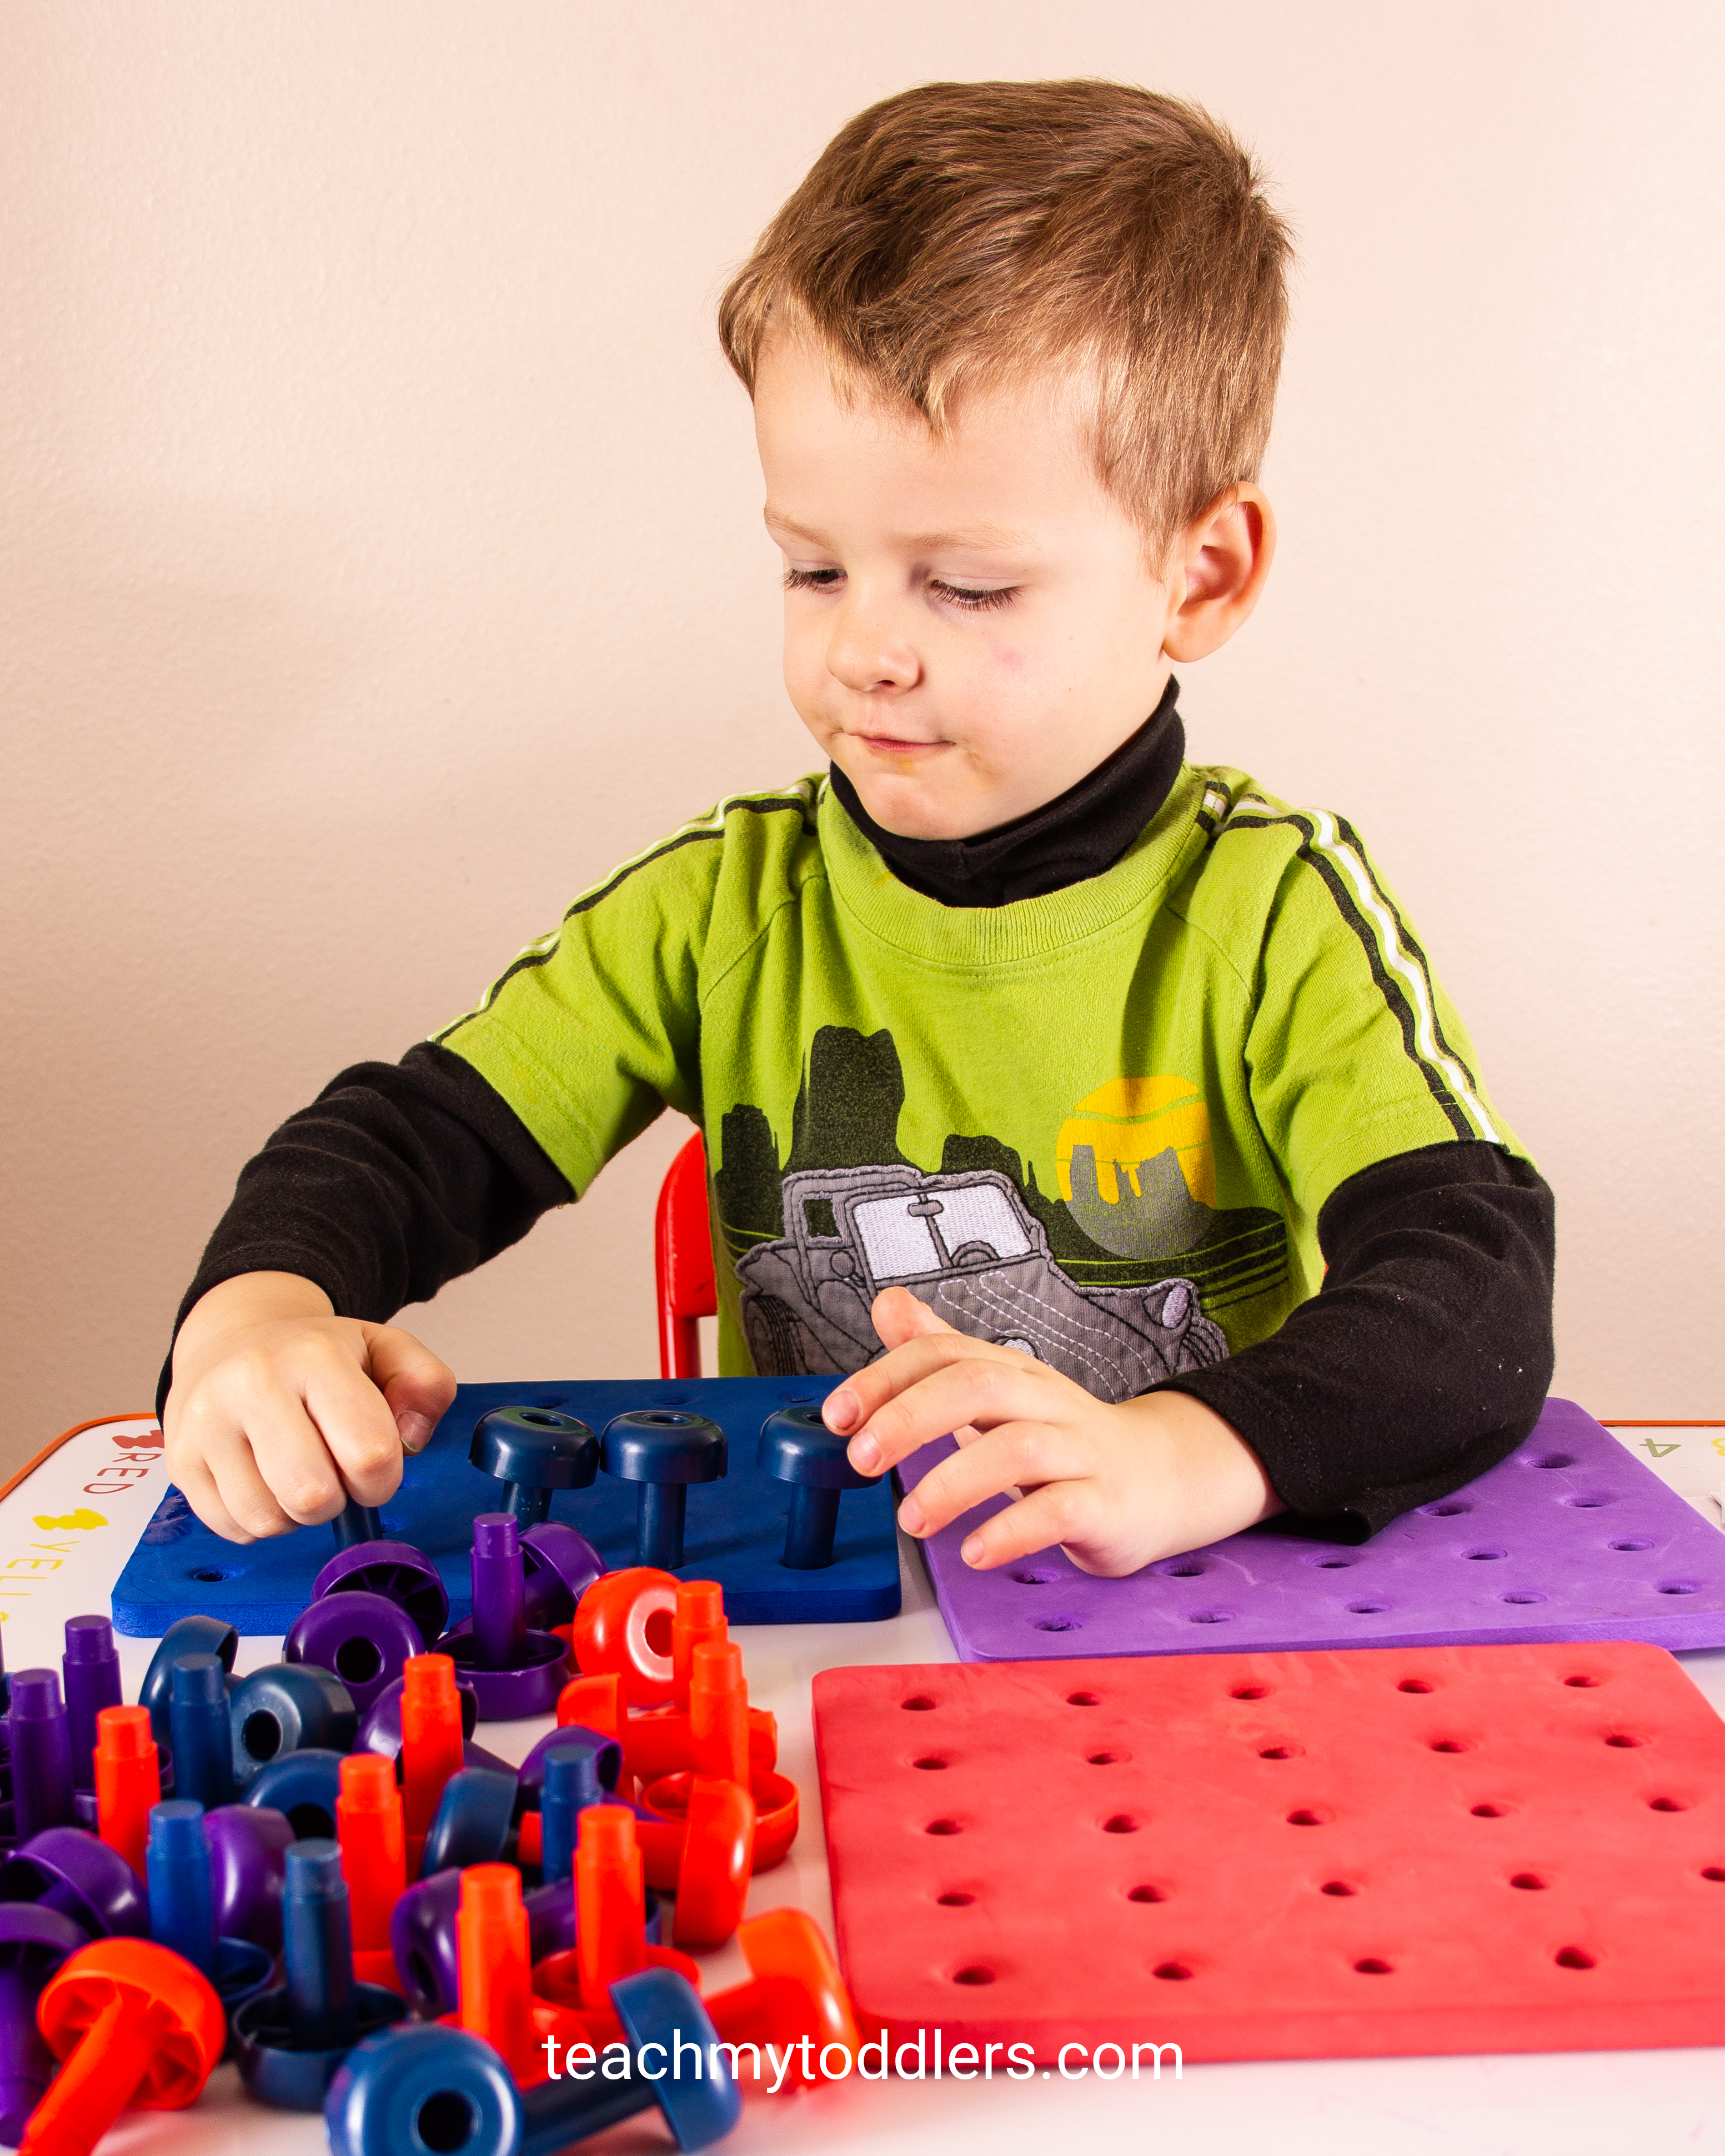 Preschool ages can learn colors too with these peg boards and pegs